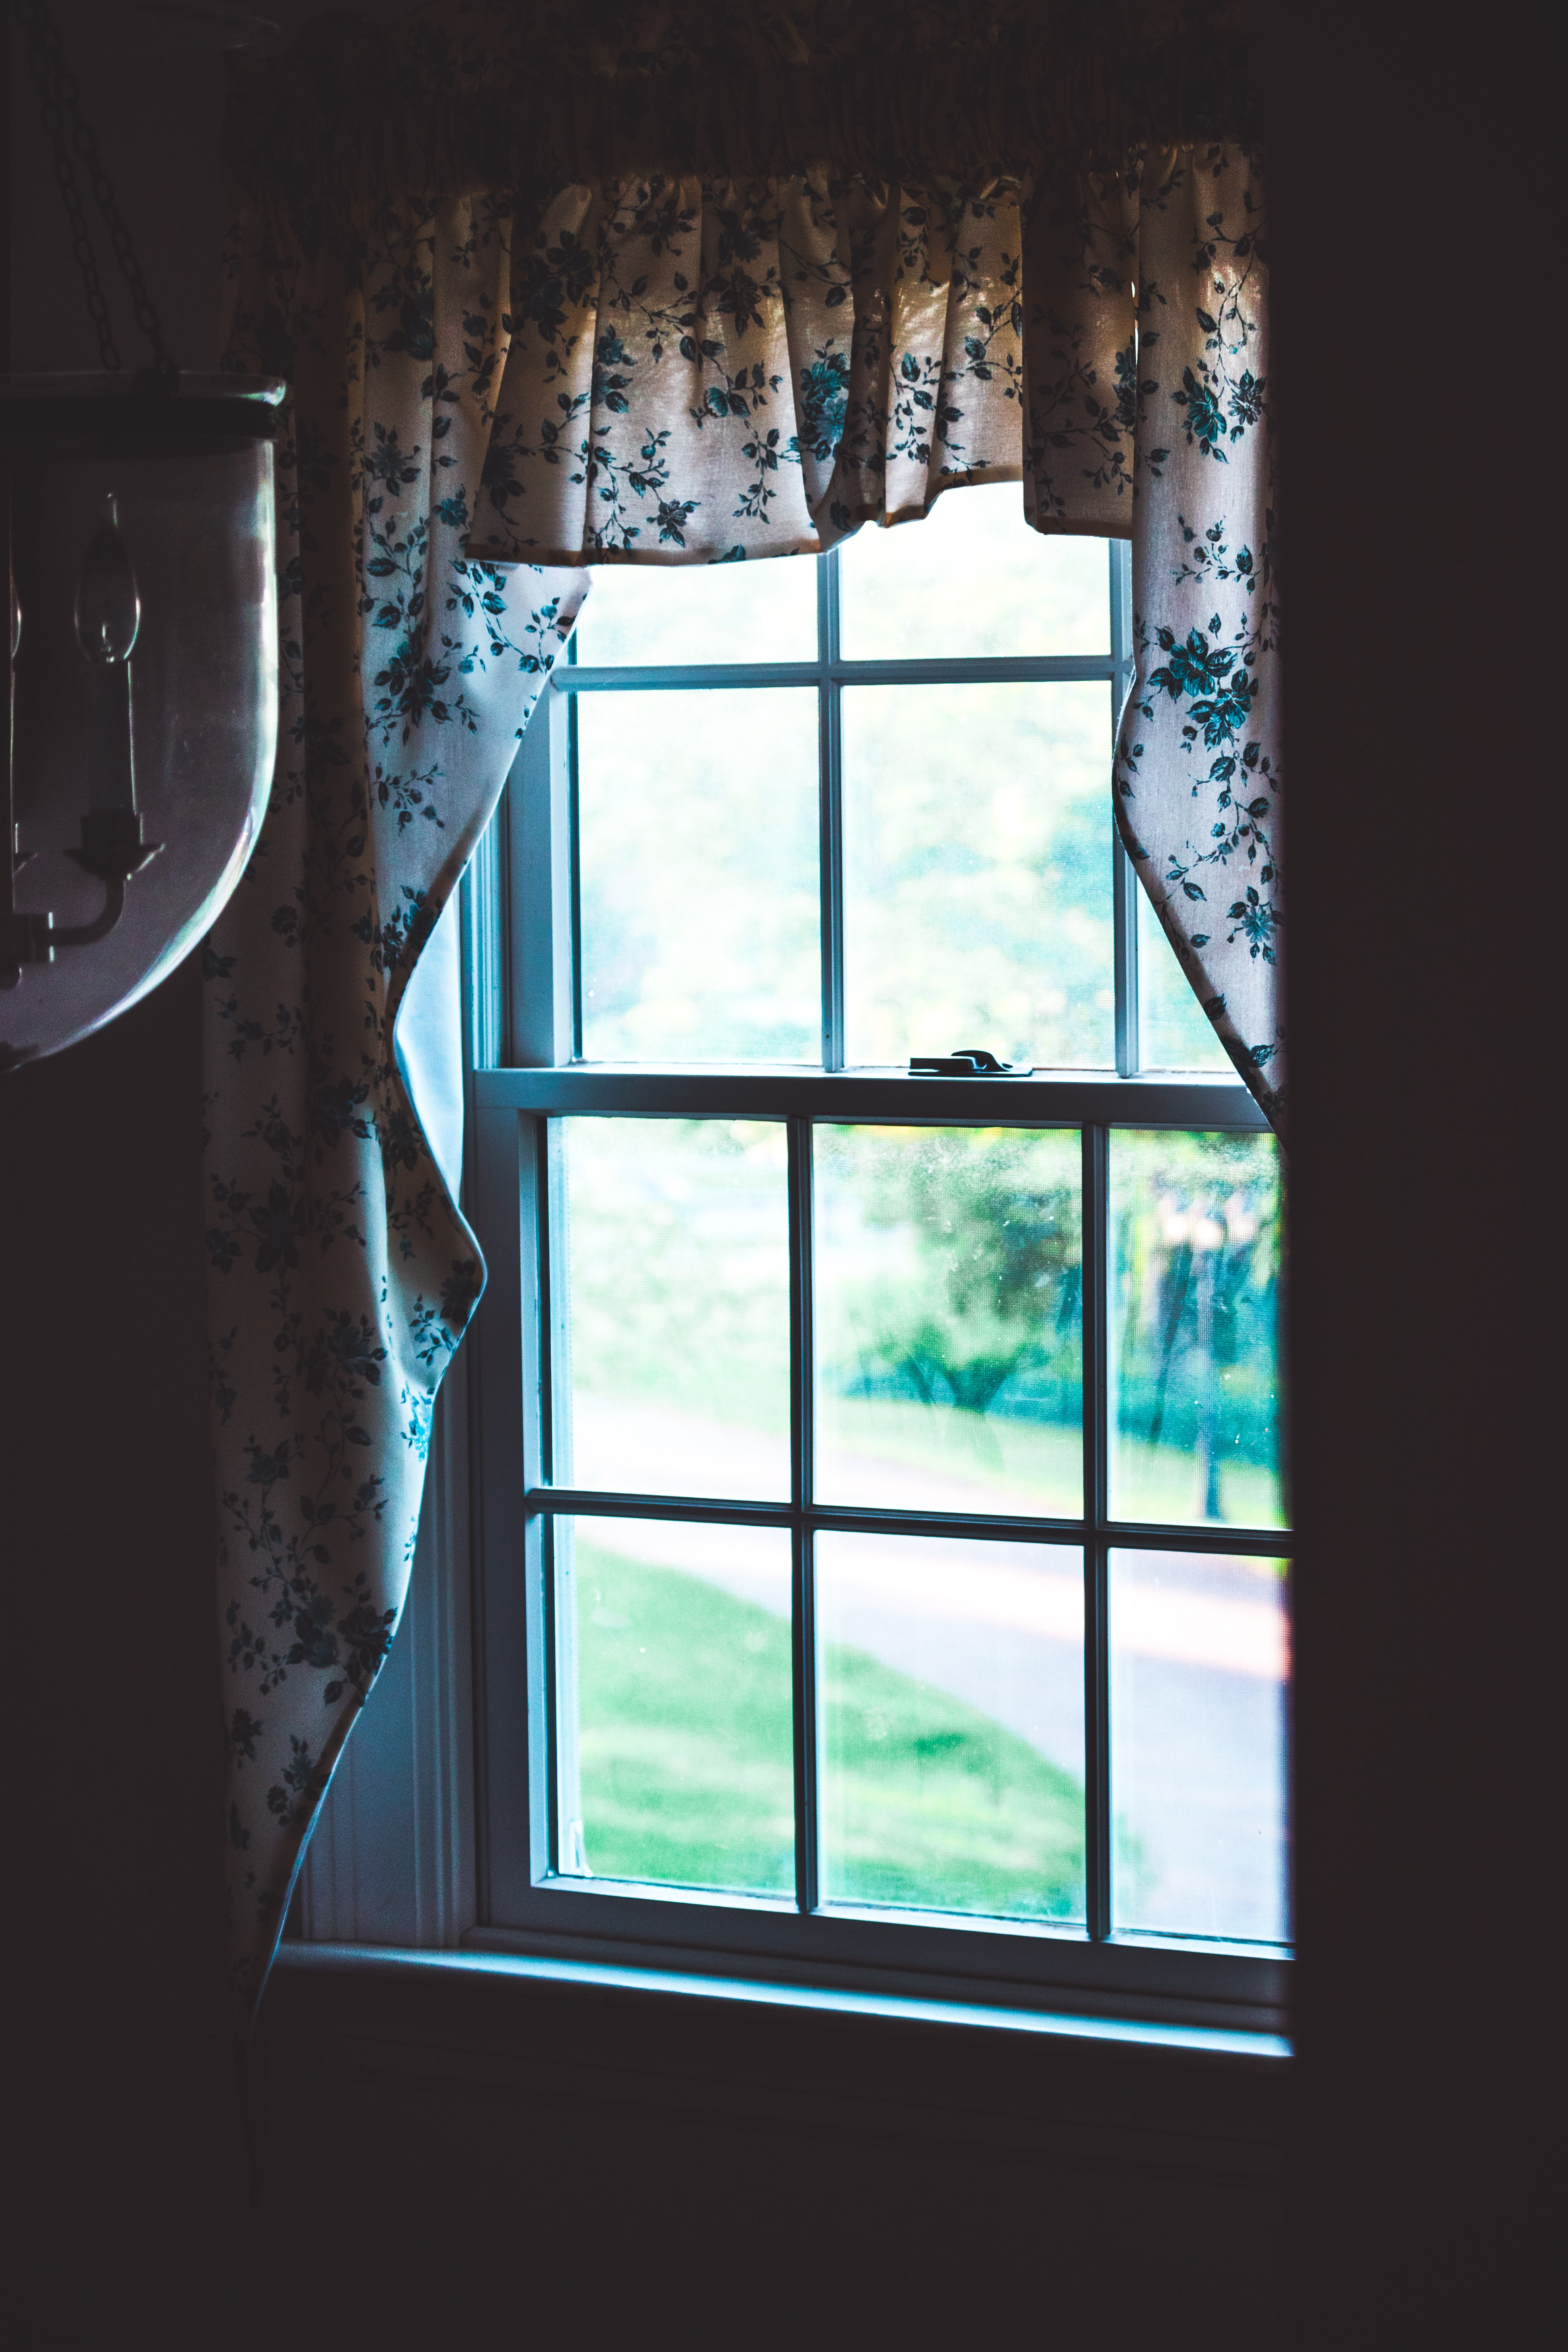 glass sash window with white floral curtain